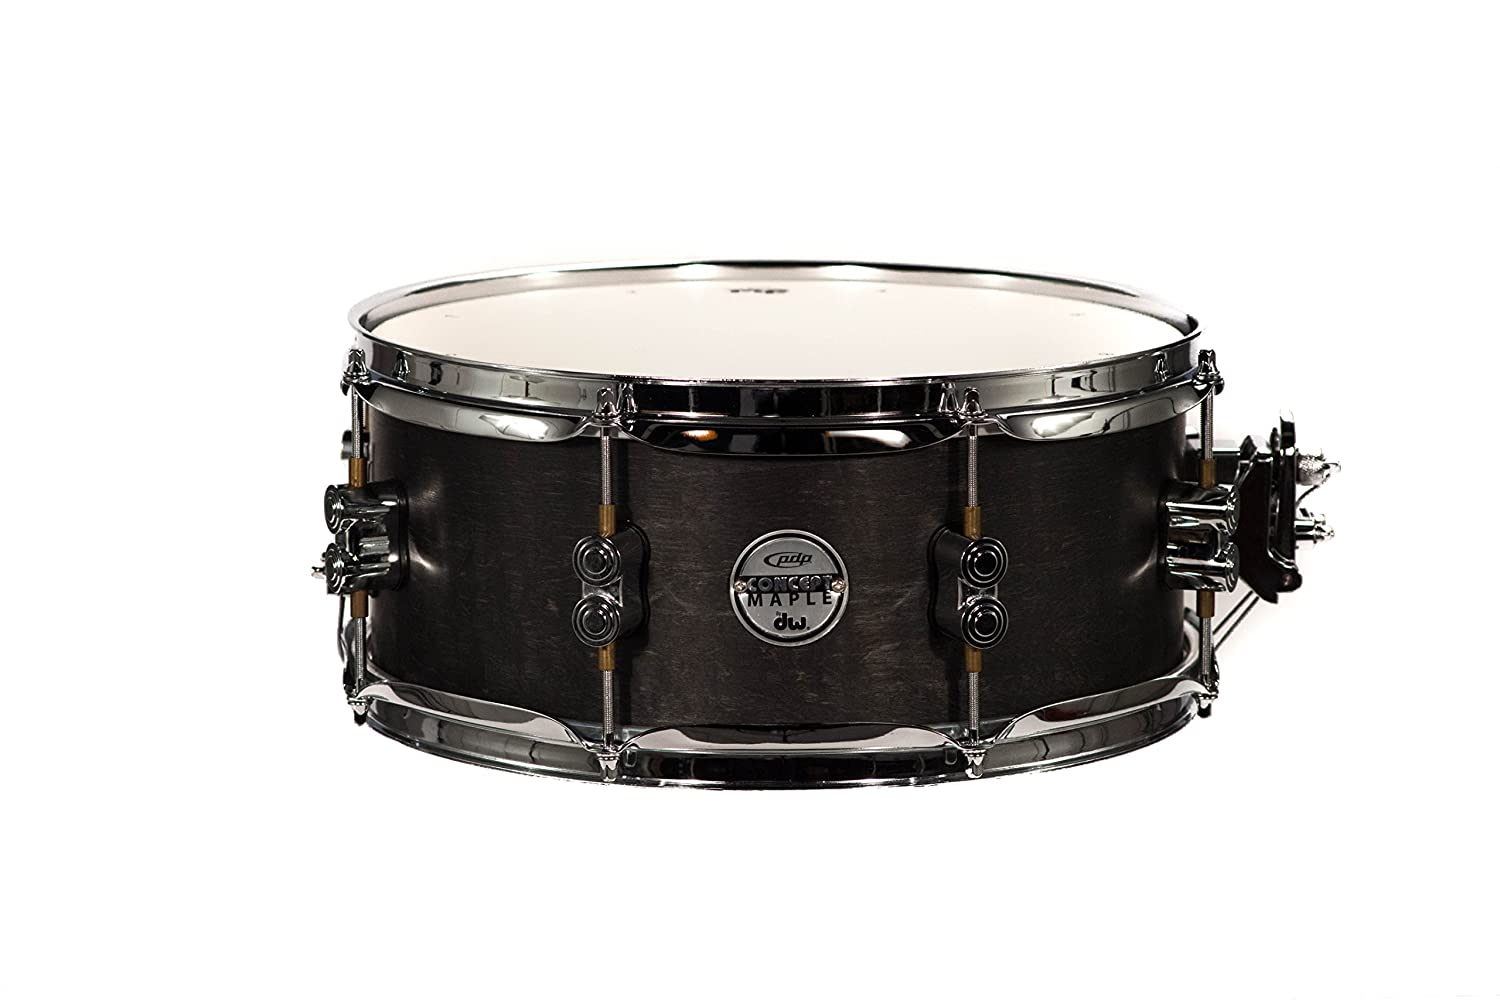 Amazon.com: PDP By DW Black Wax Maple Snare Drum 5.5x13: Musical ...